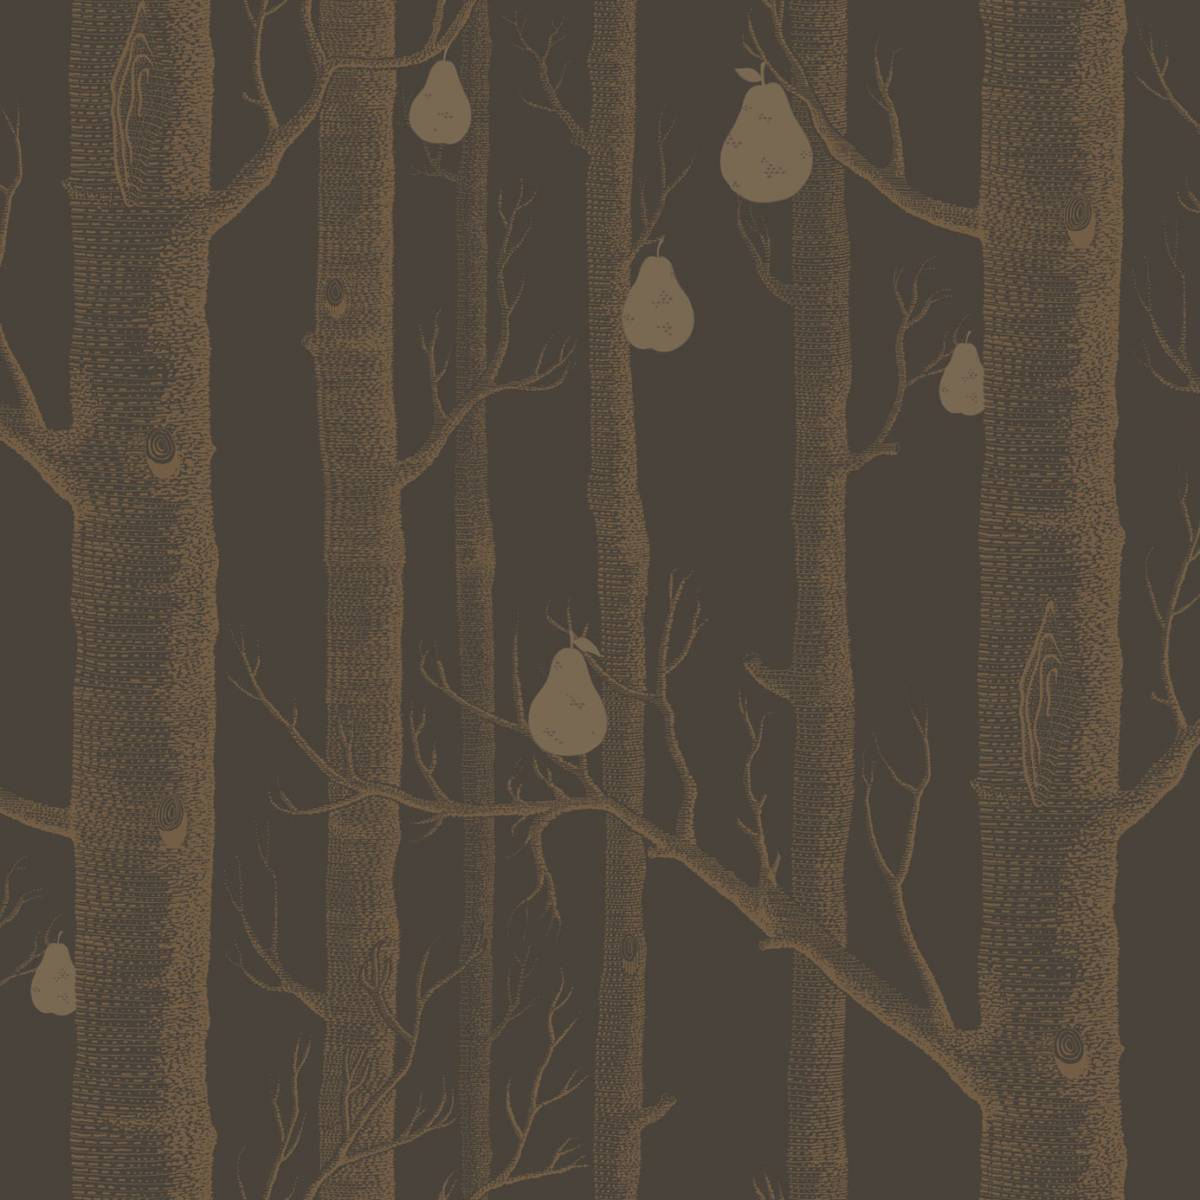 Cole And Son Woods cole & son woods & pears wallpaperproduct code: 95/5028